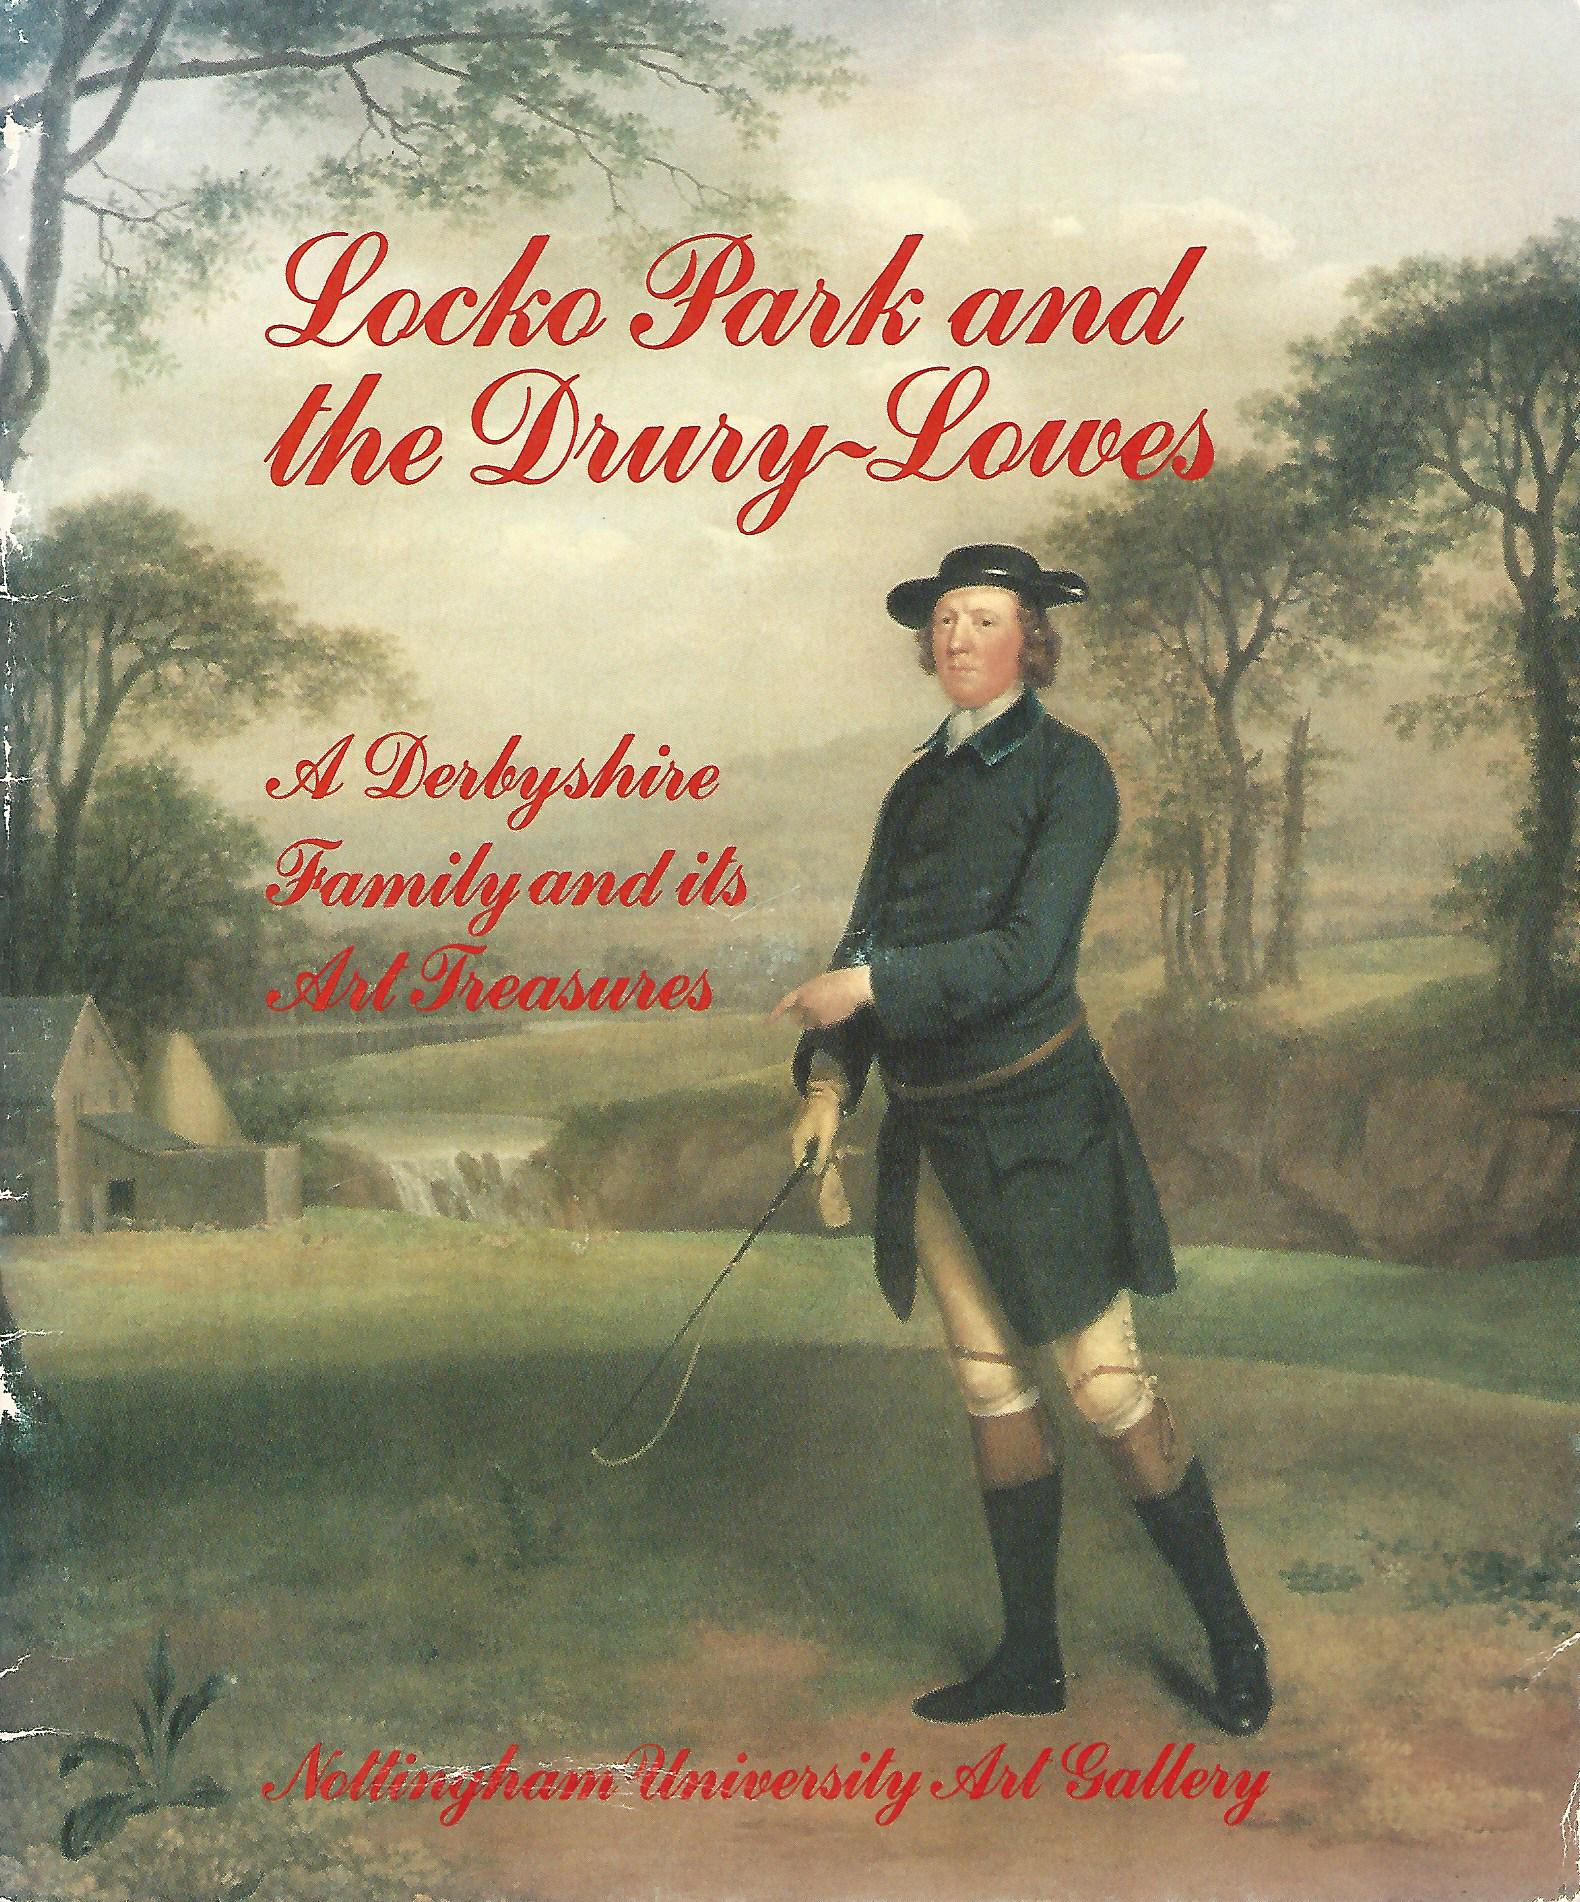 Image for Locko Park and the Drury-Lowes: A Derbyshire family and its Art Treasures.